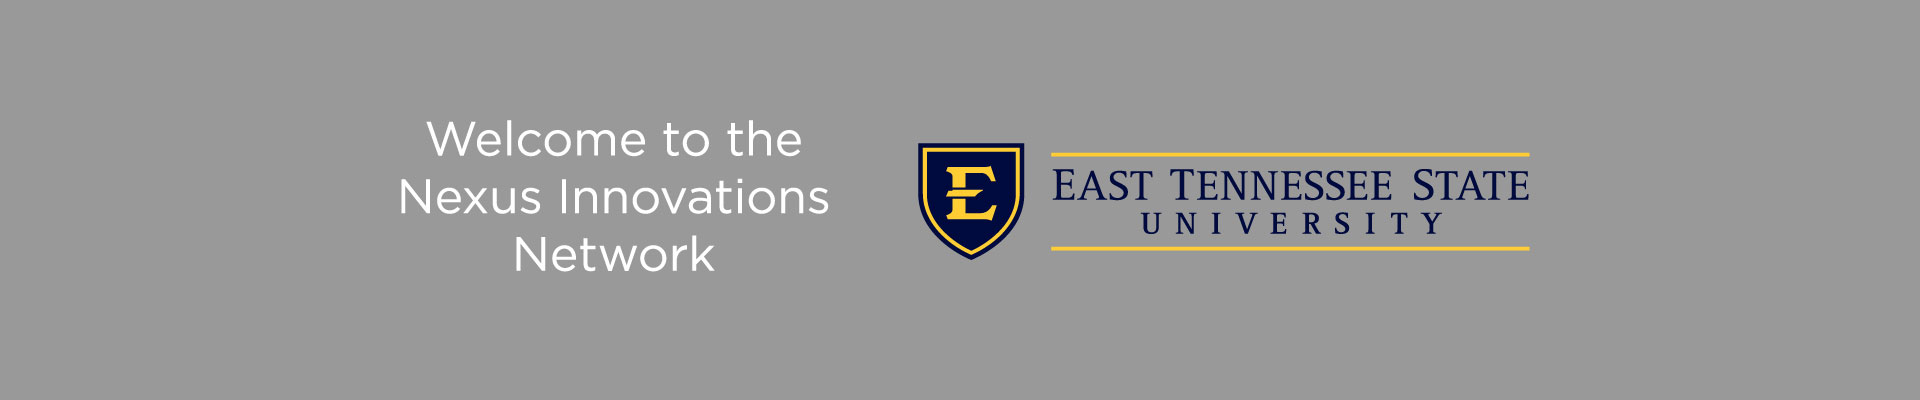 Welcome to the Nexus Innovations Network - East Tennessee State University